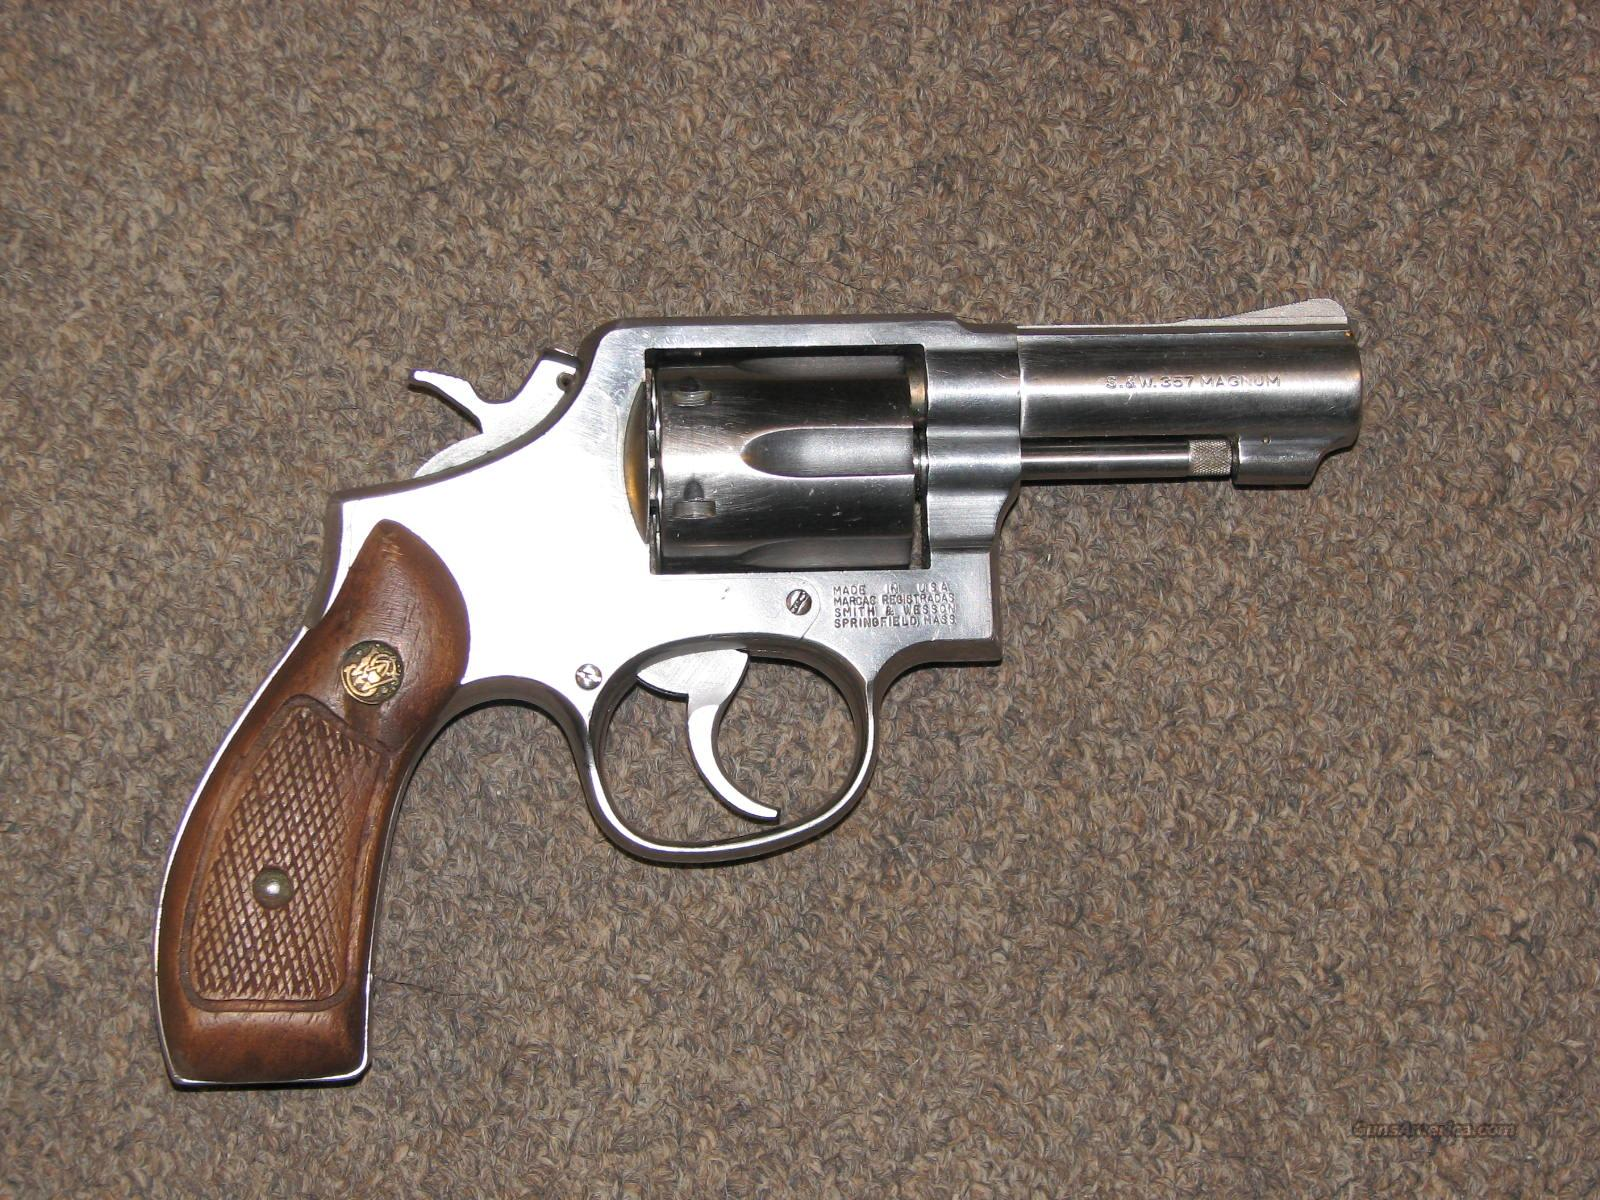 "SMITH & WESSON 65-3 .357 MAG - 3"" ROUND BUTT  Guns > Pistols > Smith & Wesson Revolvers > Full Frame Revolver"